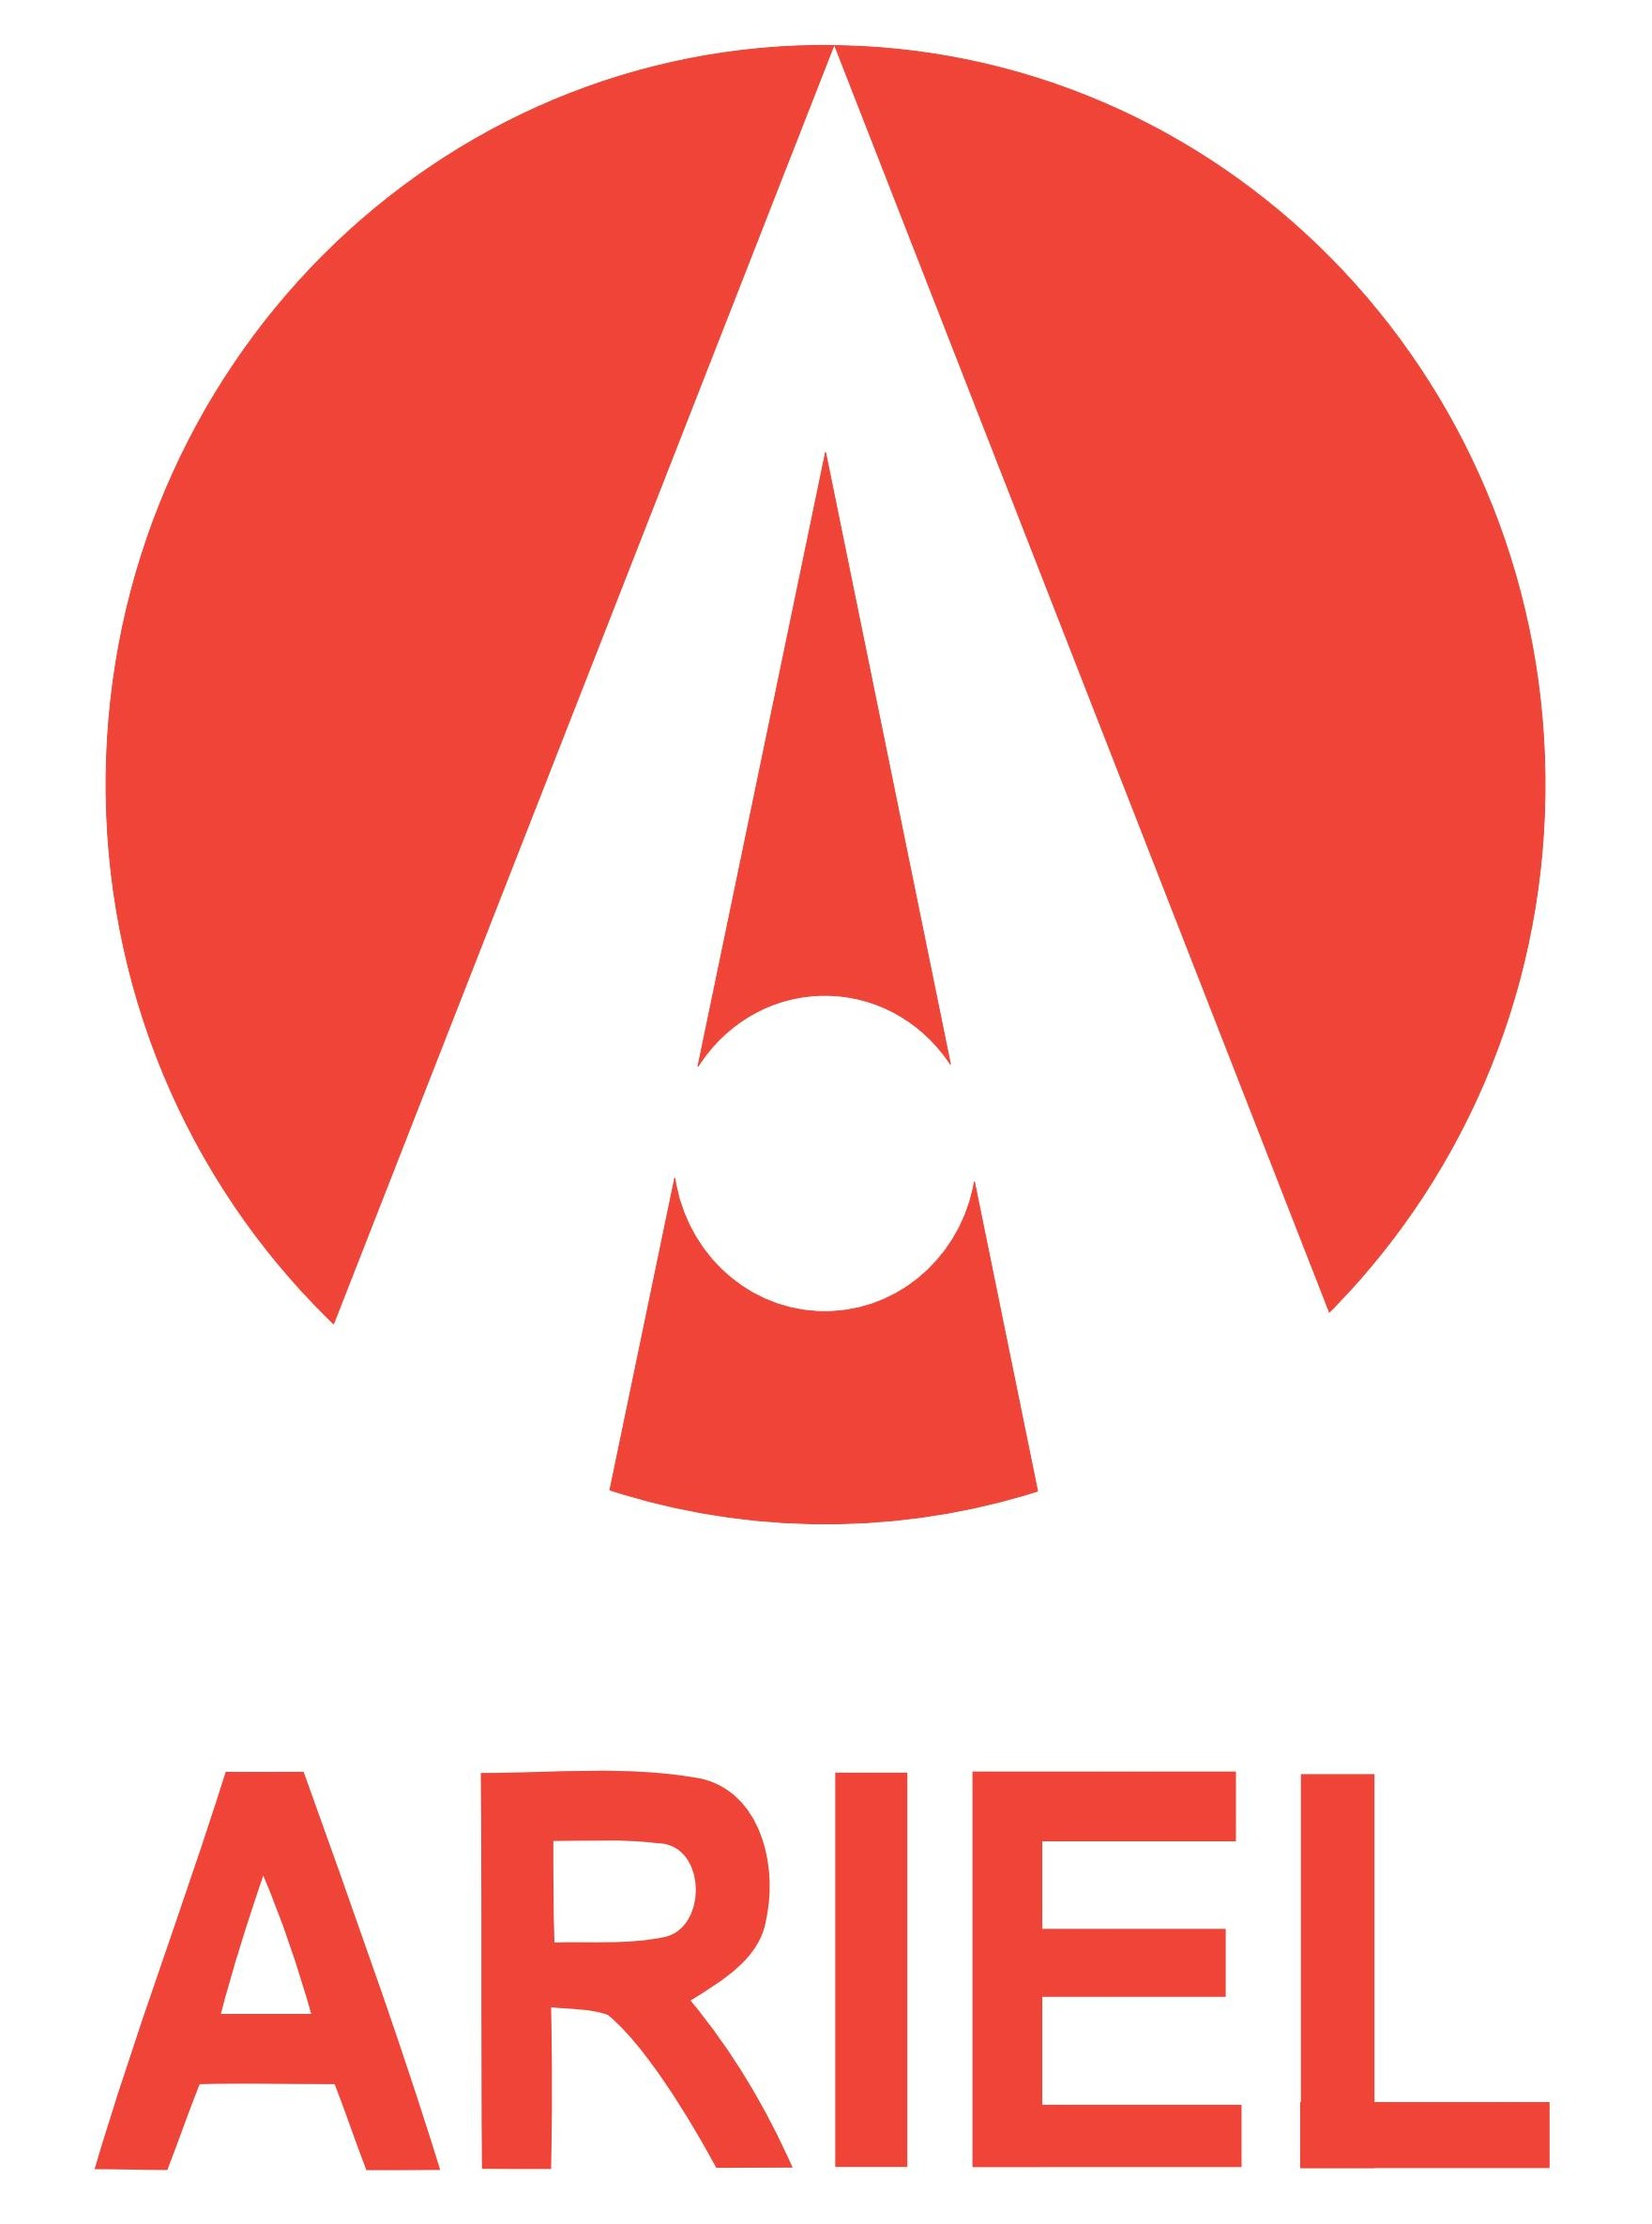 Ariel Logo Wallpaper